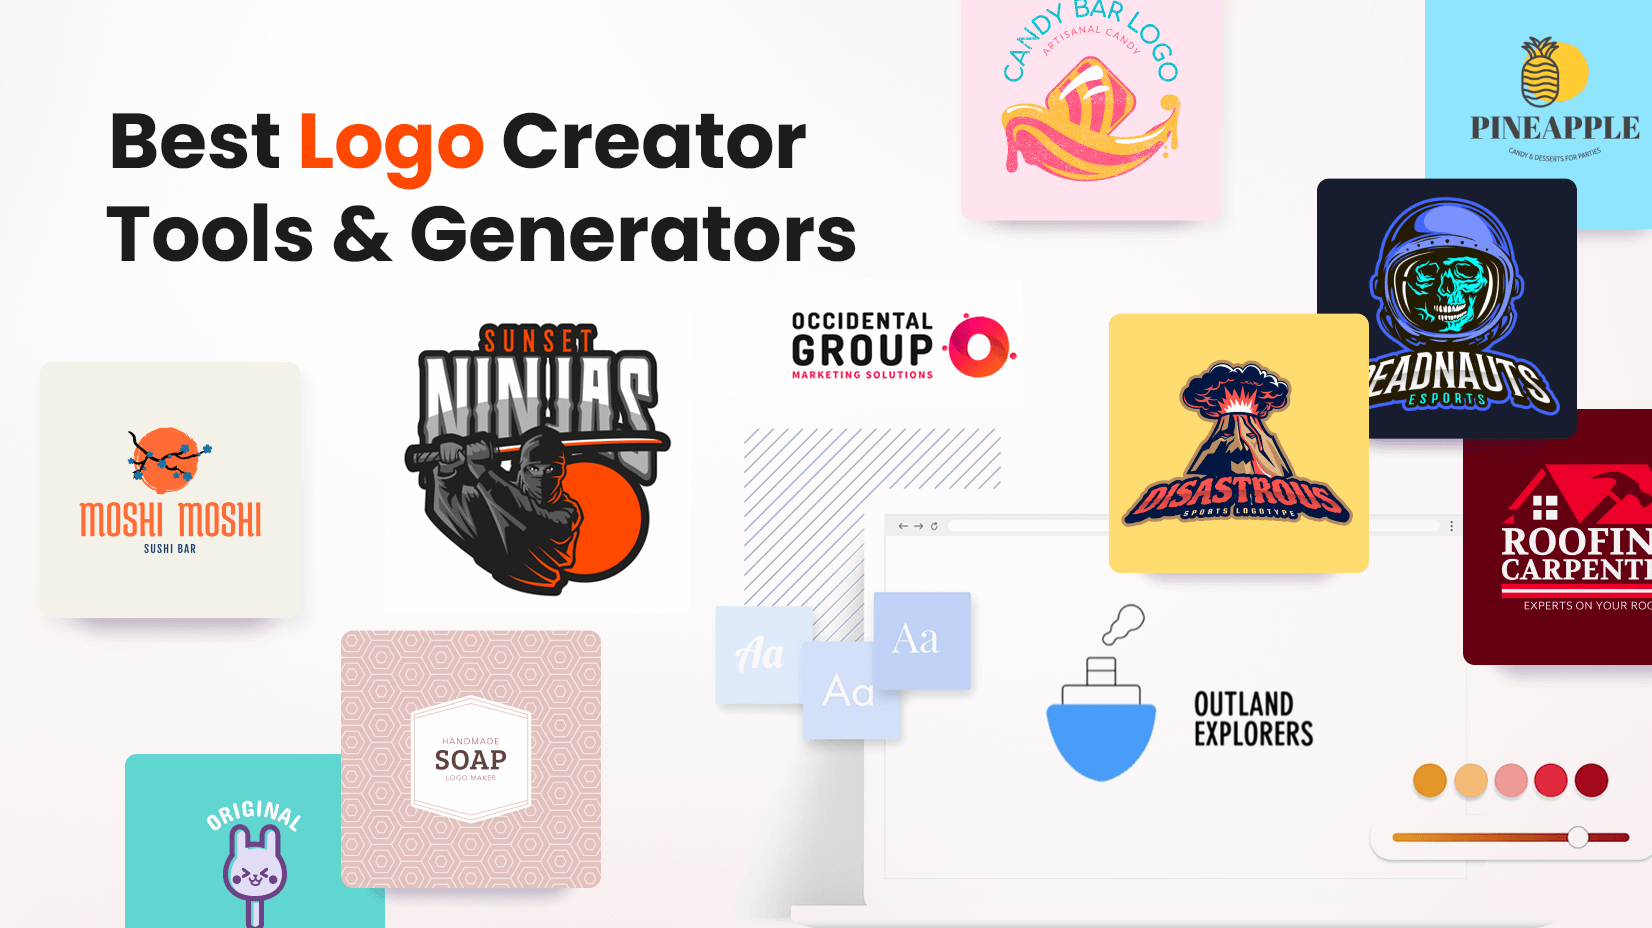 Best Logo Creator Tools